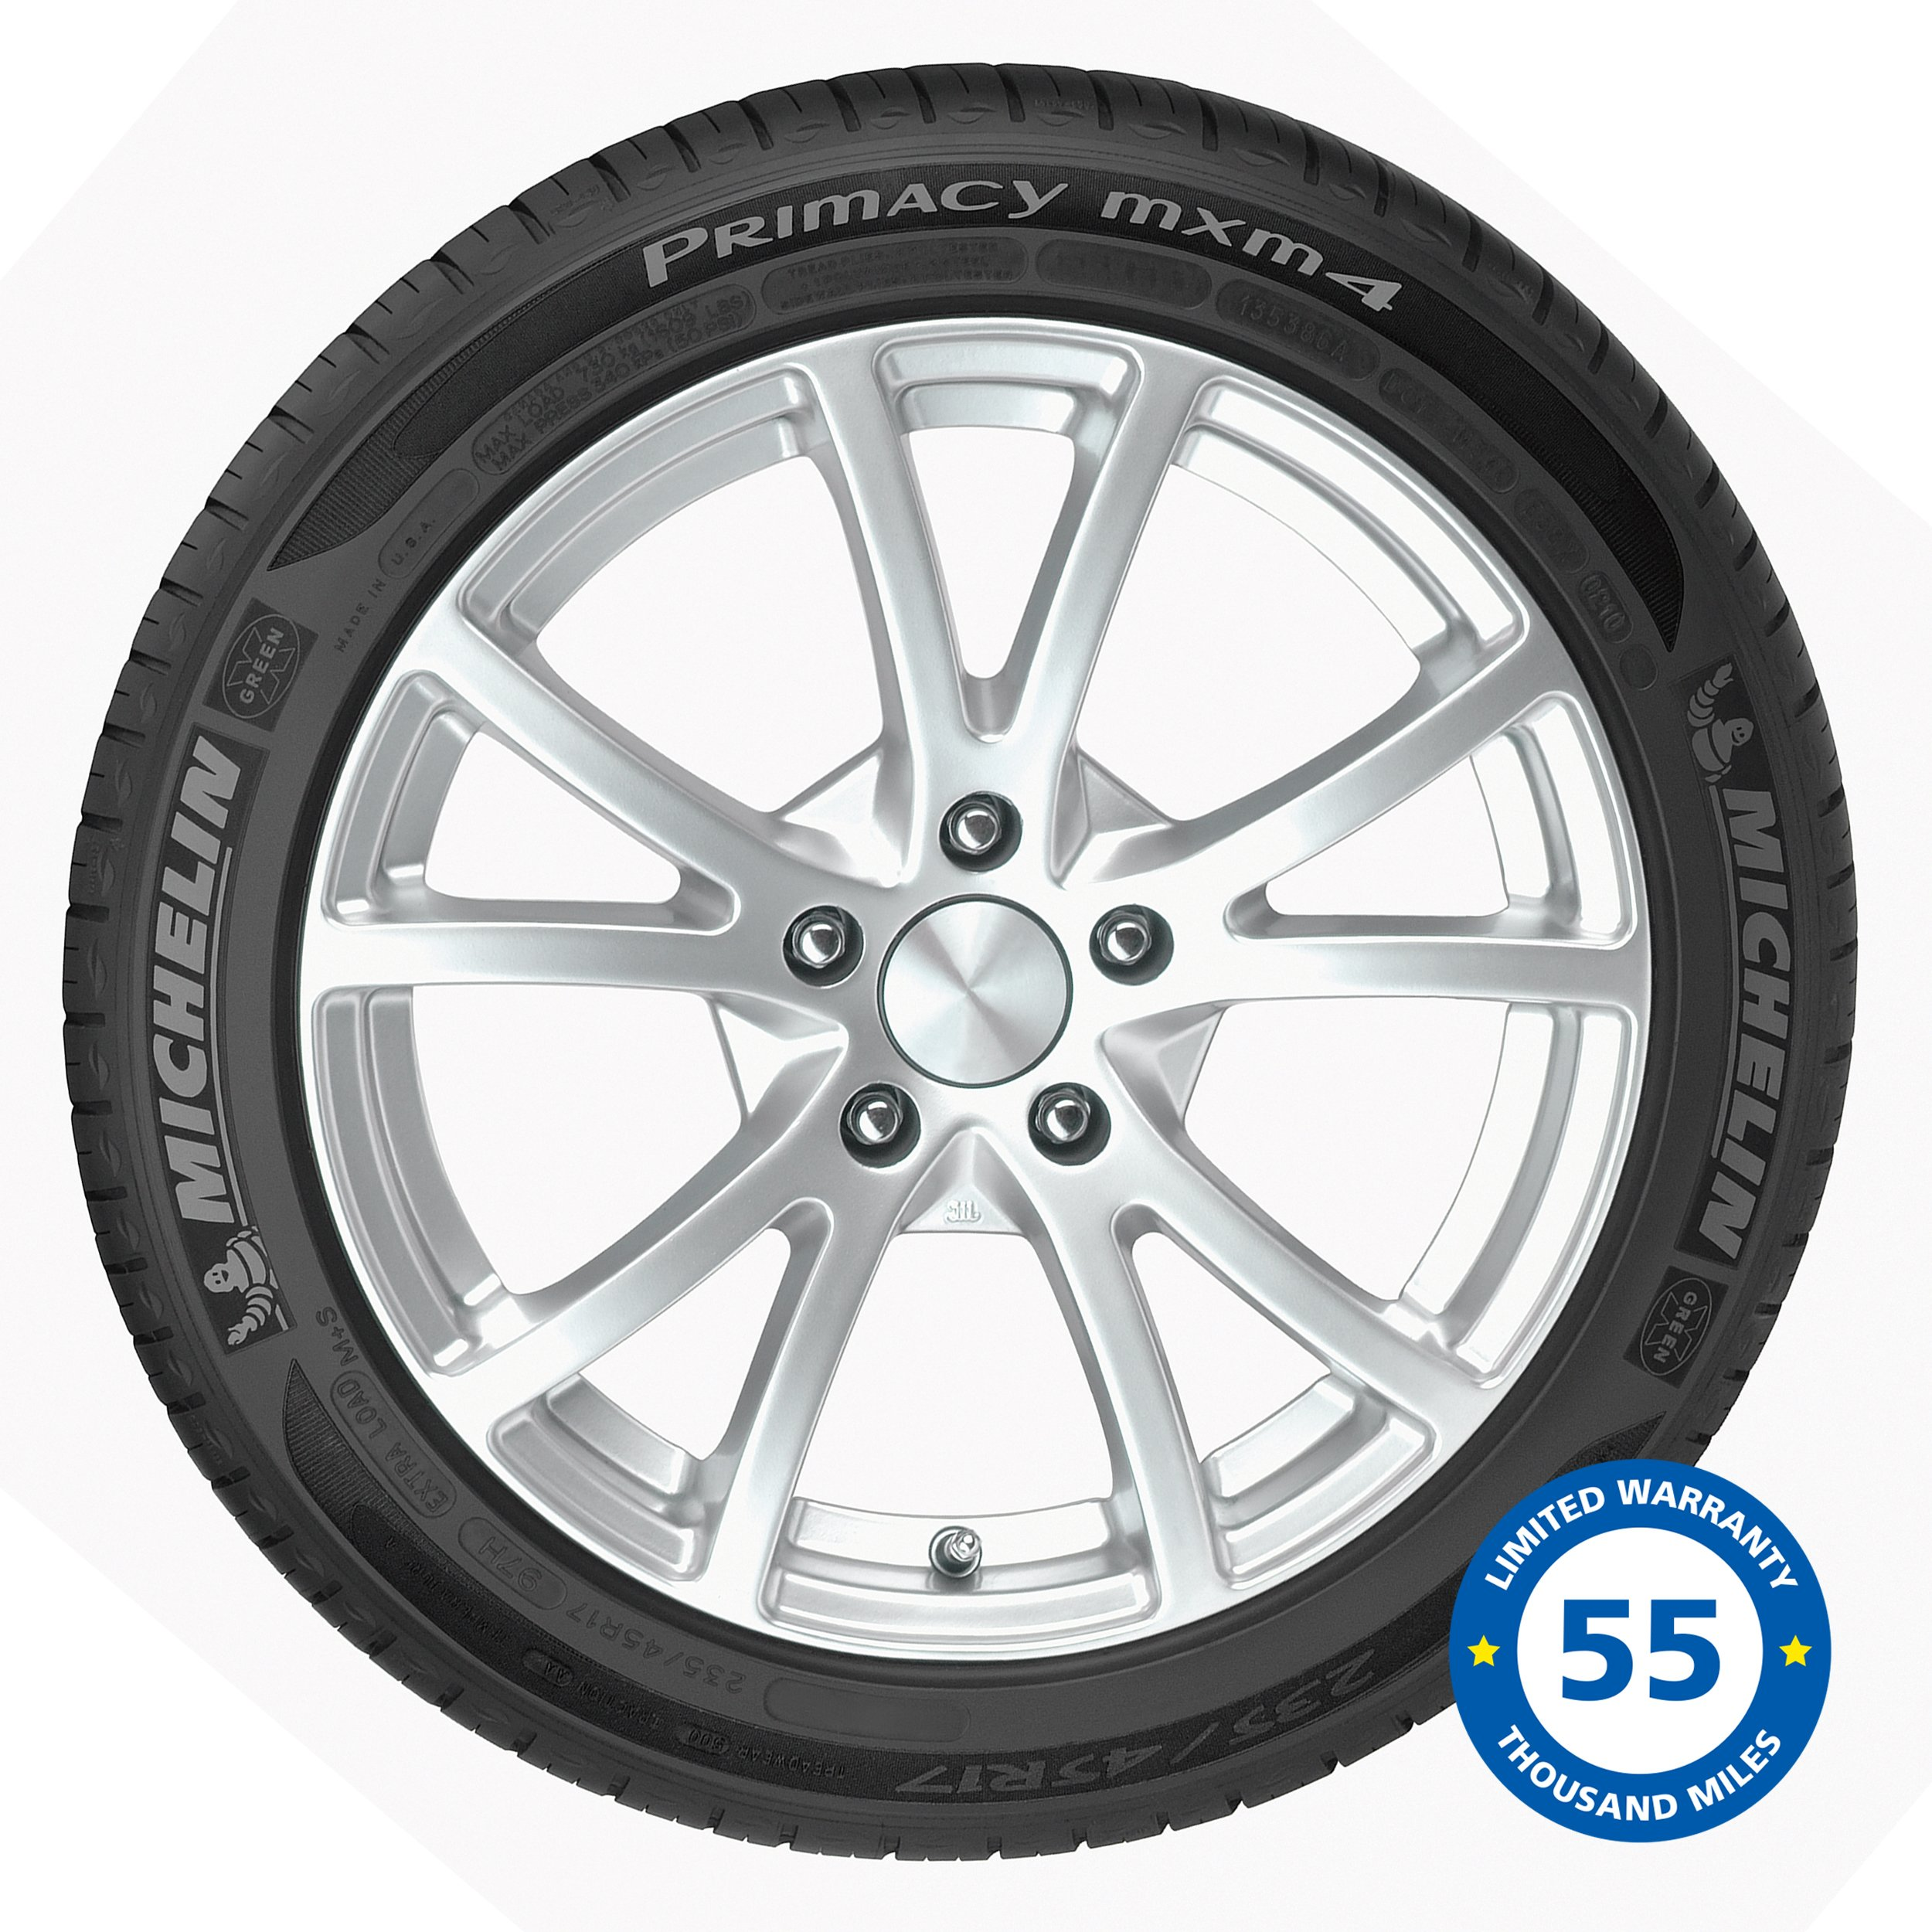 Michelin Primacy MXM4 Touring Radial Tire - 245/45R17/XL 99H